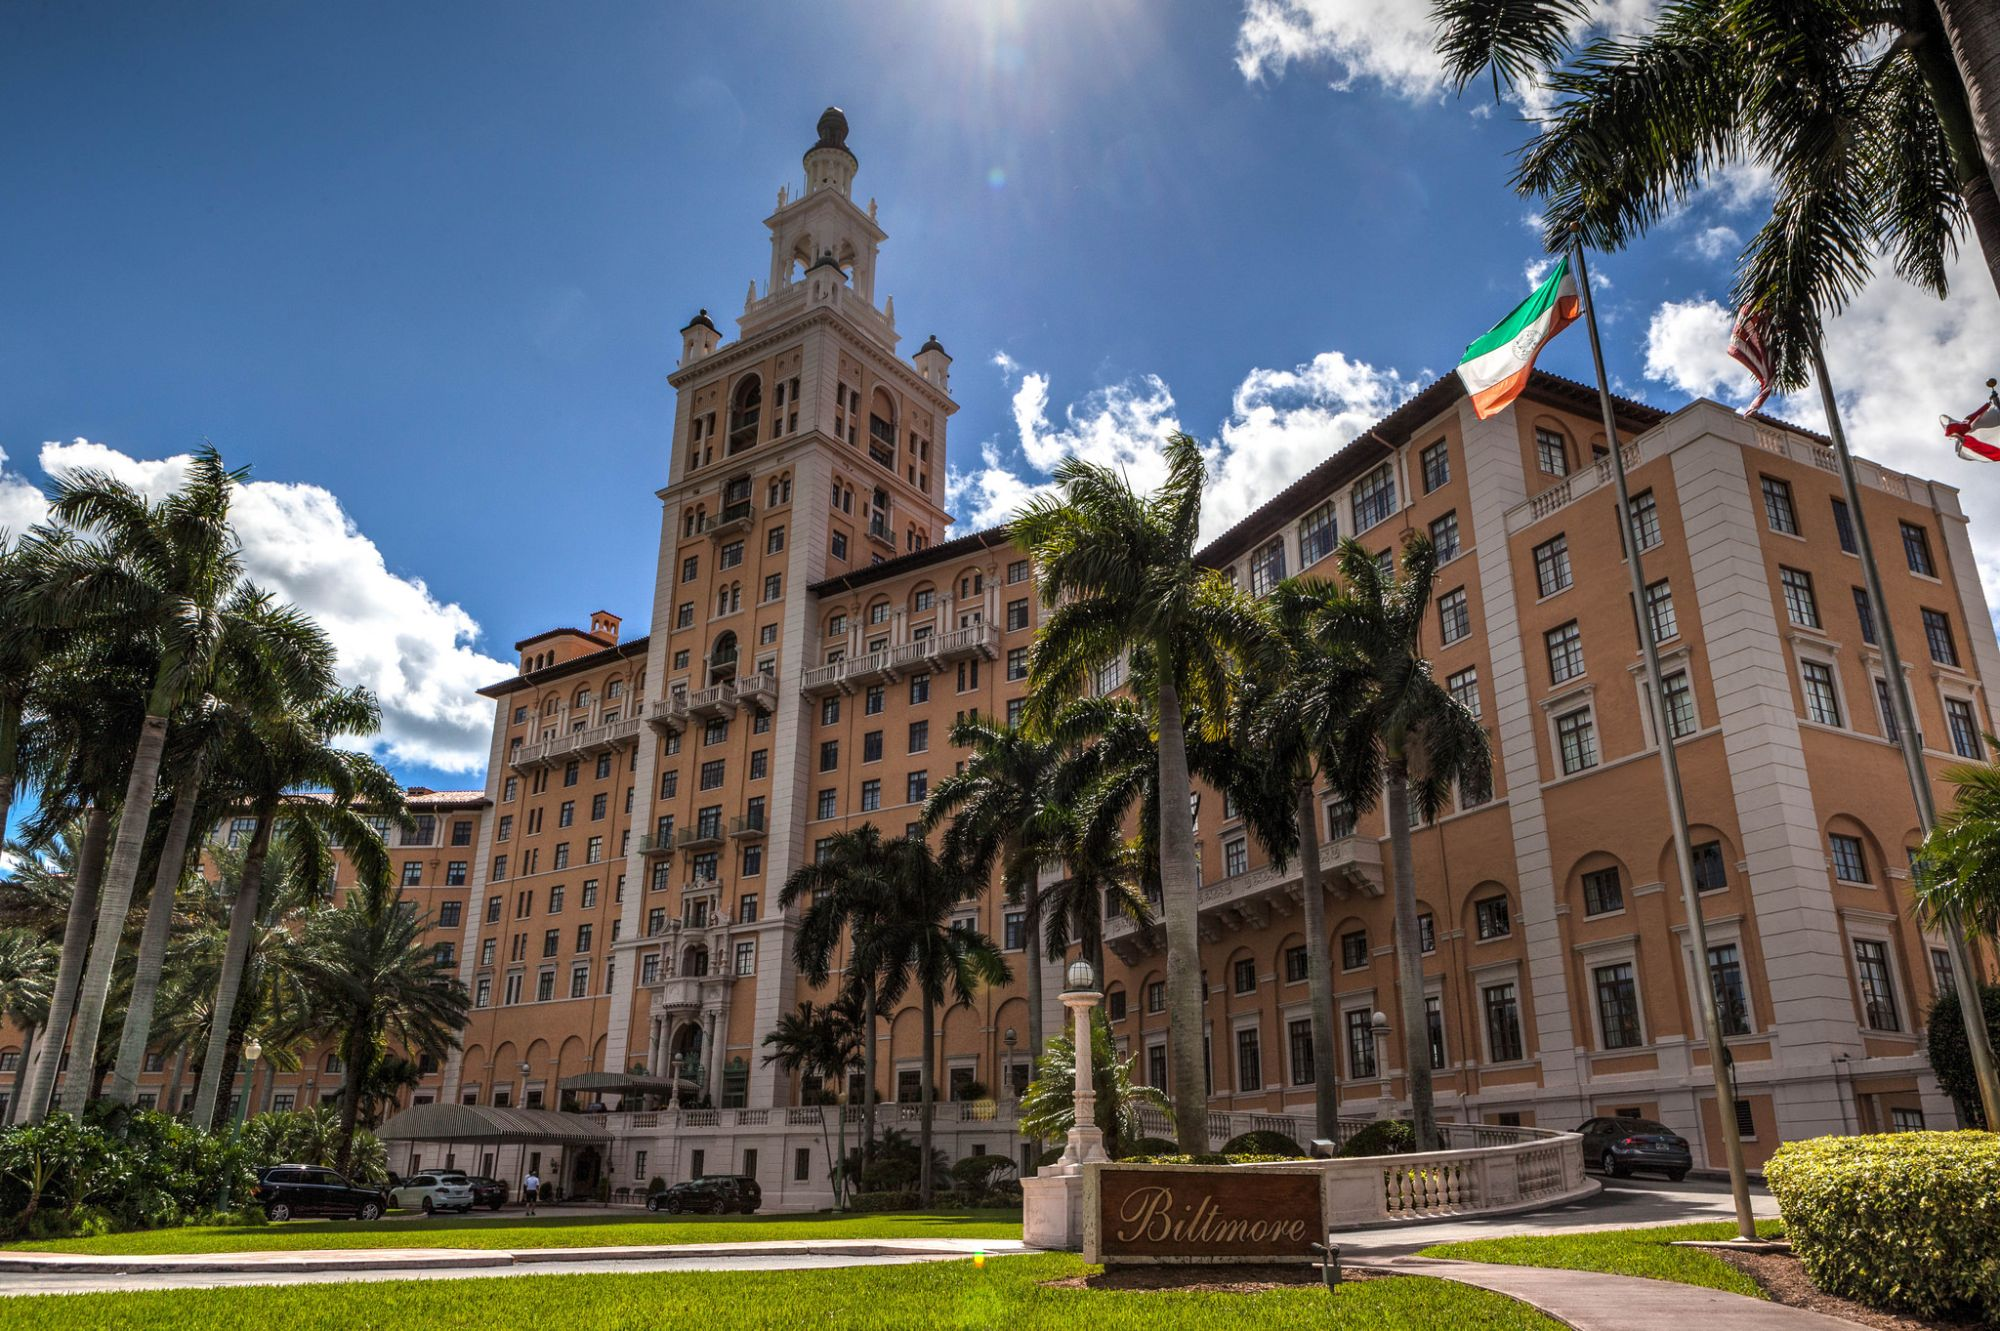 Visit the Biltmore Hotel in Coral Gables and take a free tour.